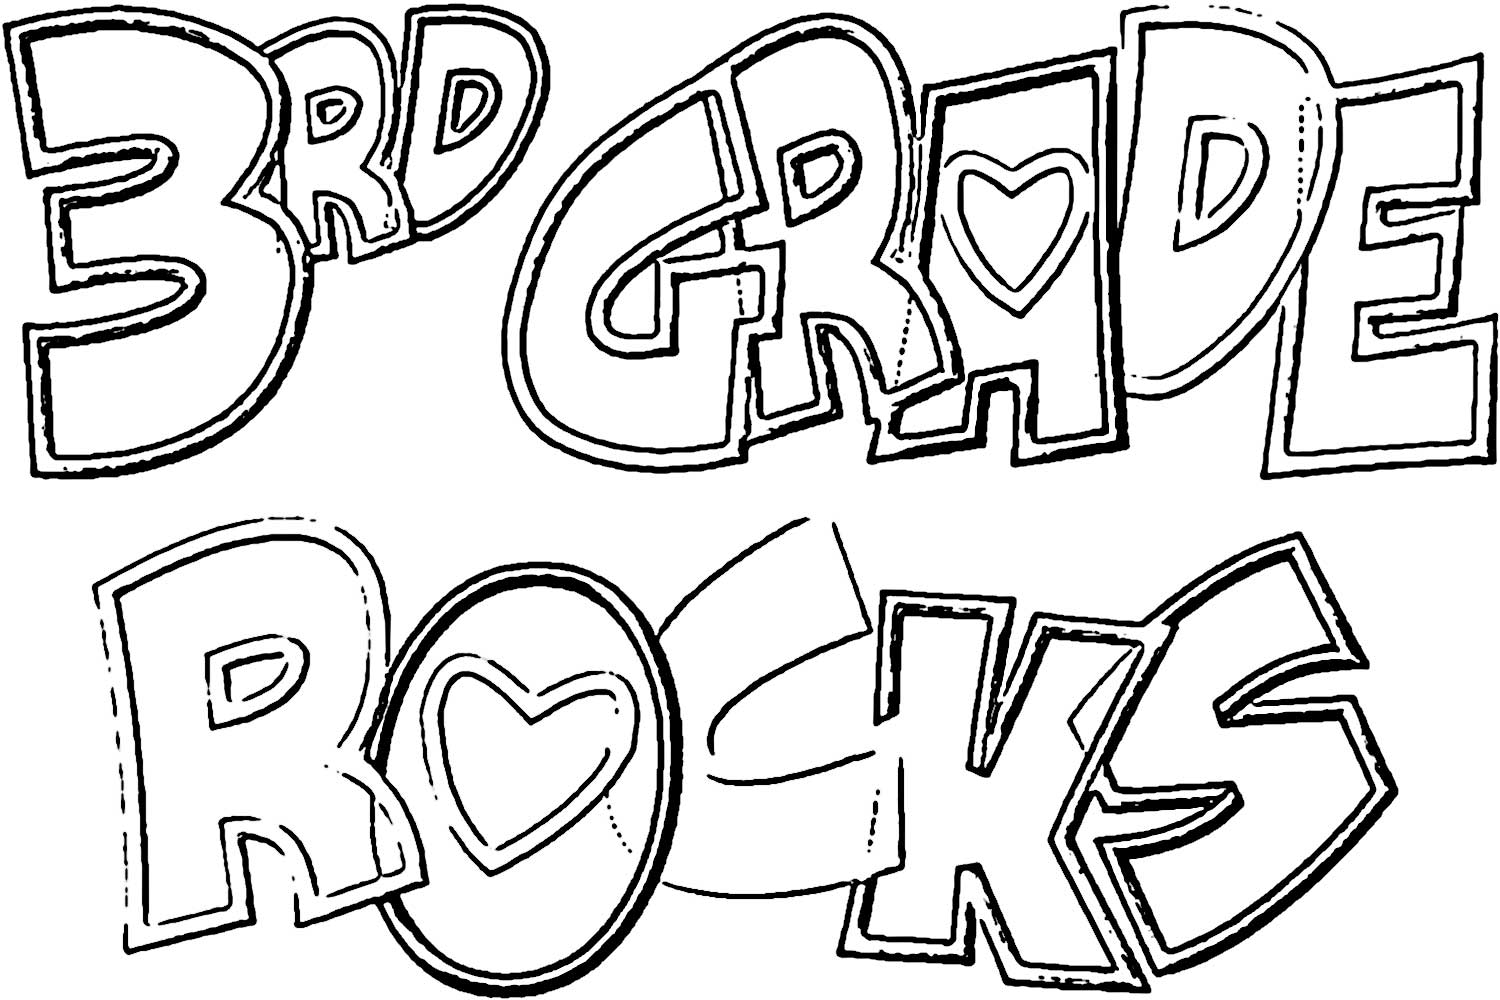 coloring pages for 3rd graders 3rd grade coloring pages free download on clipartmag pages graders coloring for 3rd